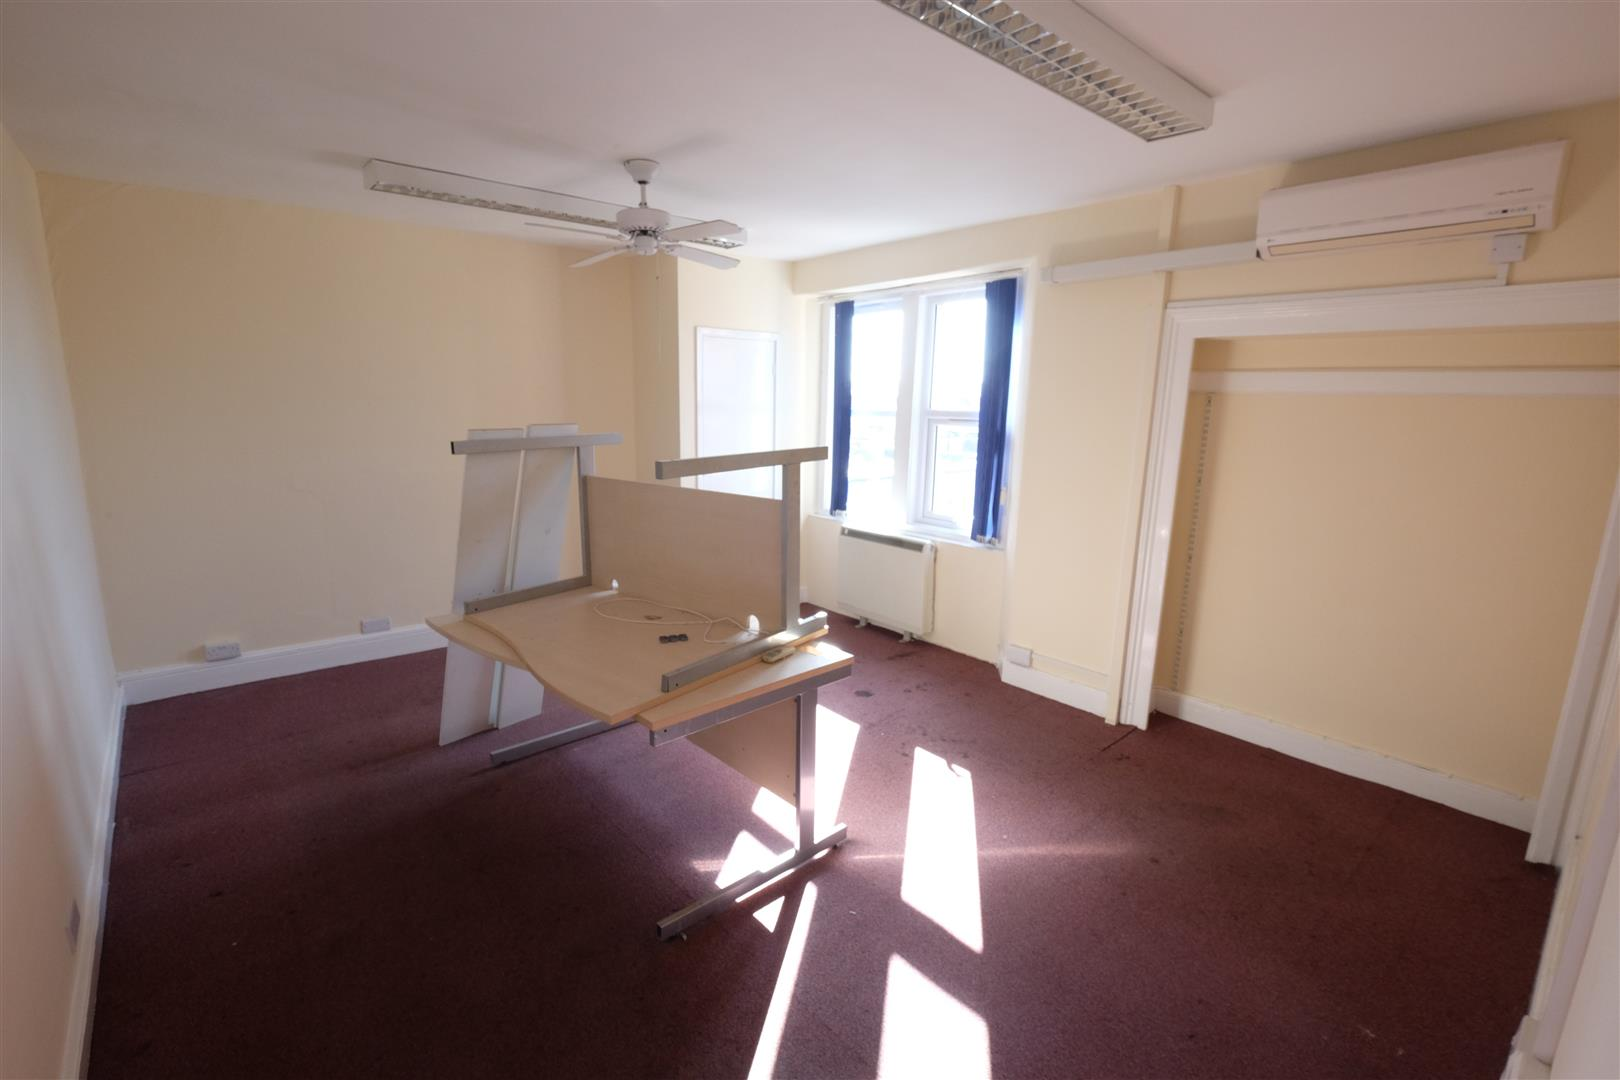 Images for FREEHOLD - SCOPE FOR RESI ON UPPER FLOORS EAID:hollismoapi BID:11